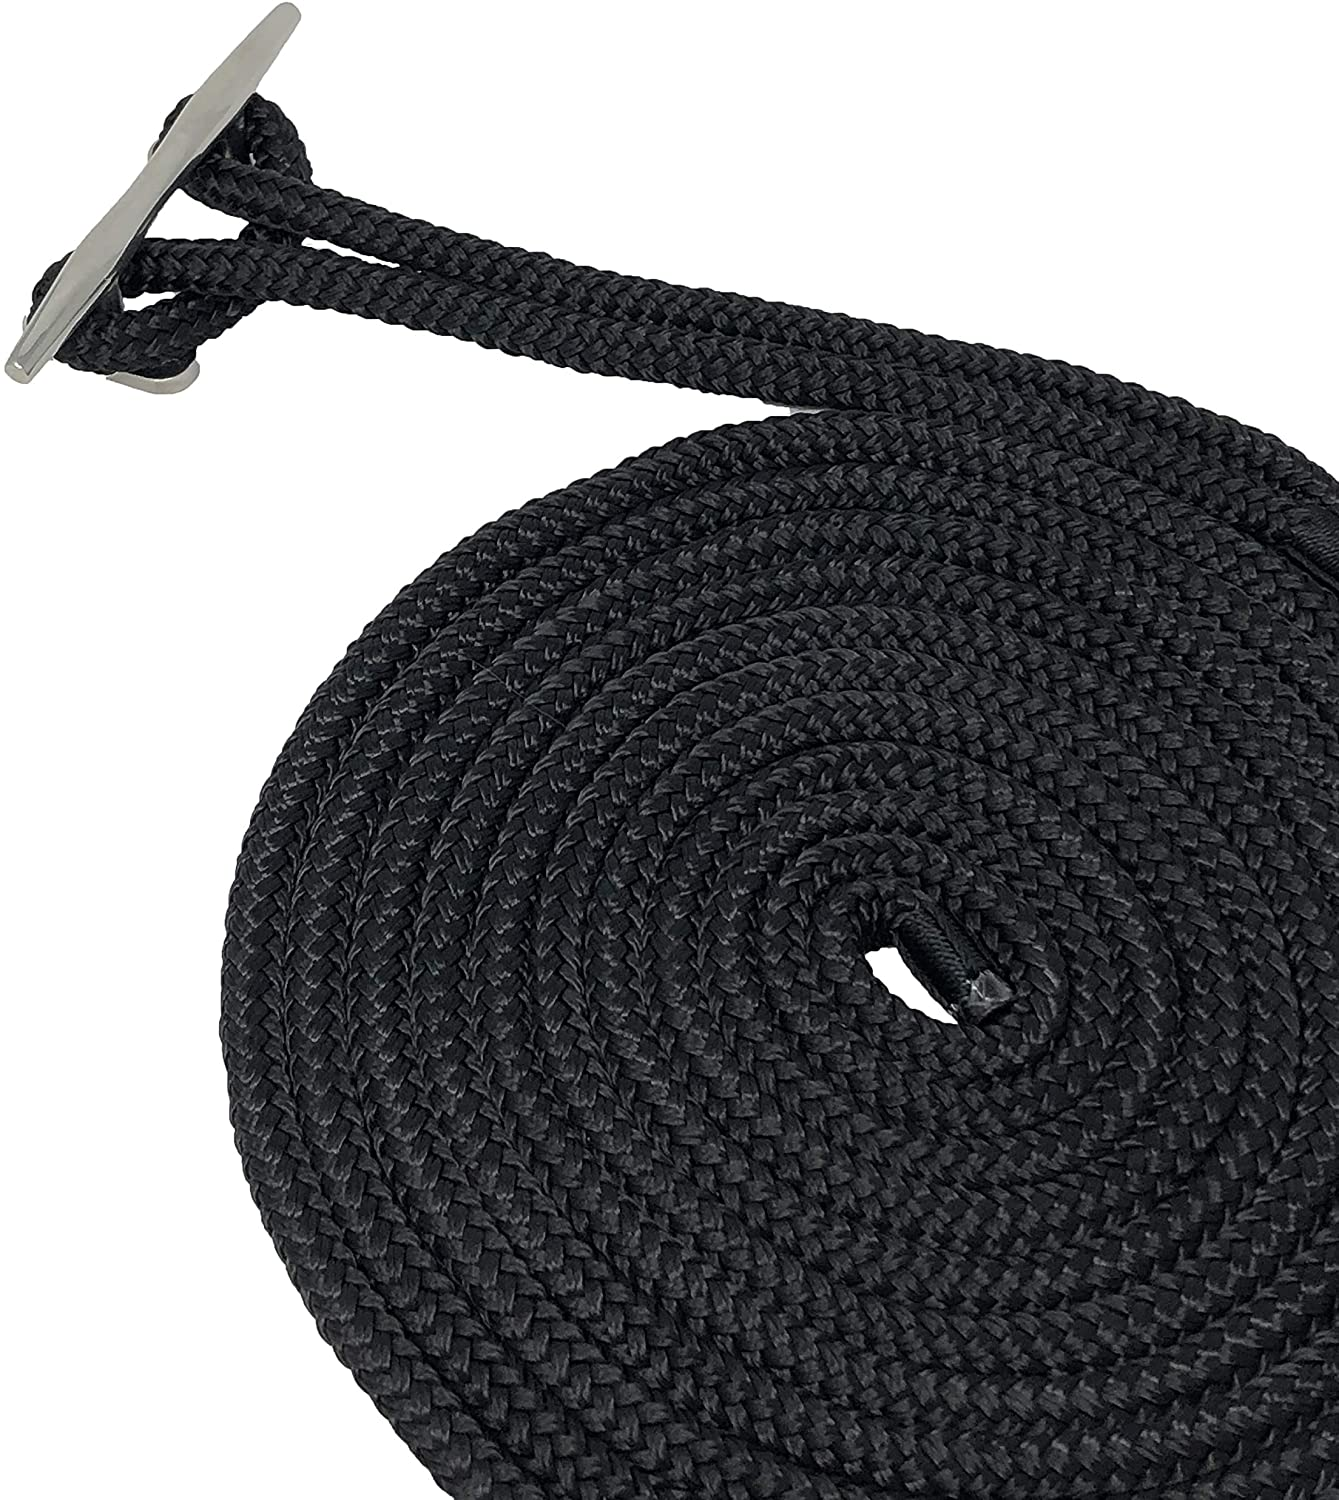 Rainier Supply ! Super beauty product restock quality top! Co 50' or 30' Max 84% OFF Double Braided Line - Premium Dock